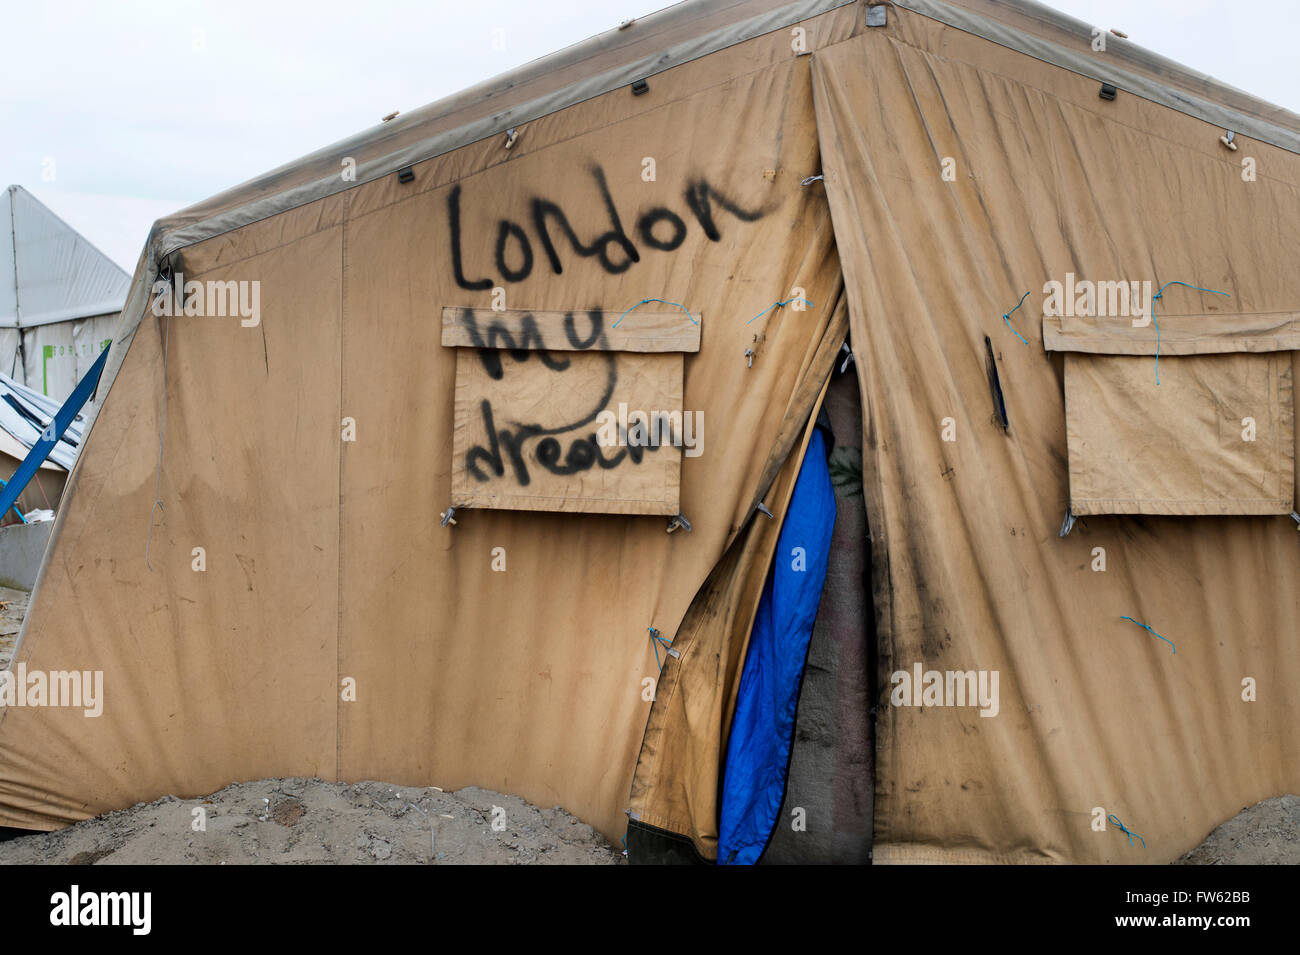 France, Calais. Refugee camp - the so-called Jungle. Writing on a tent saying 'London my dream'. - Stock Image